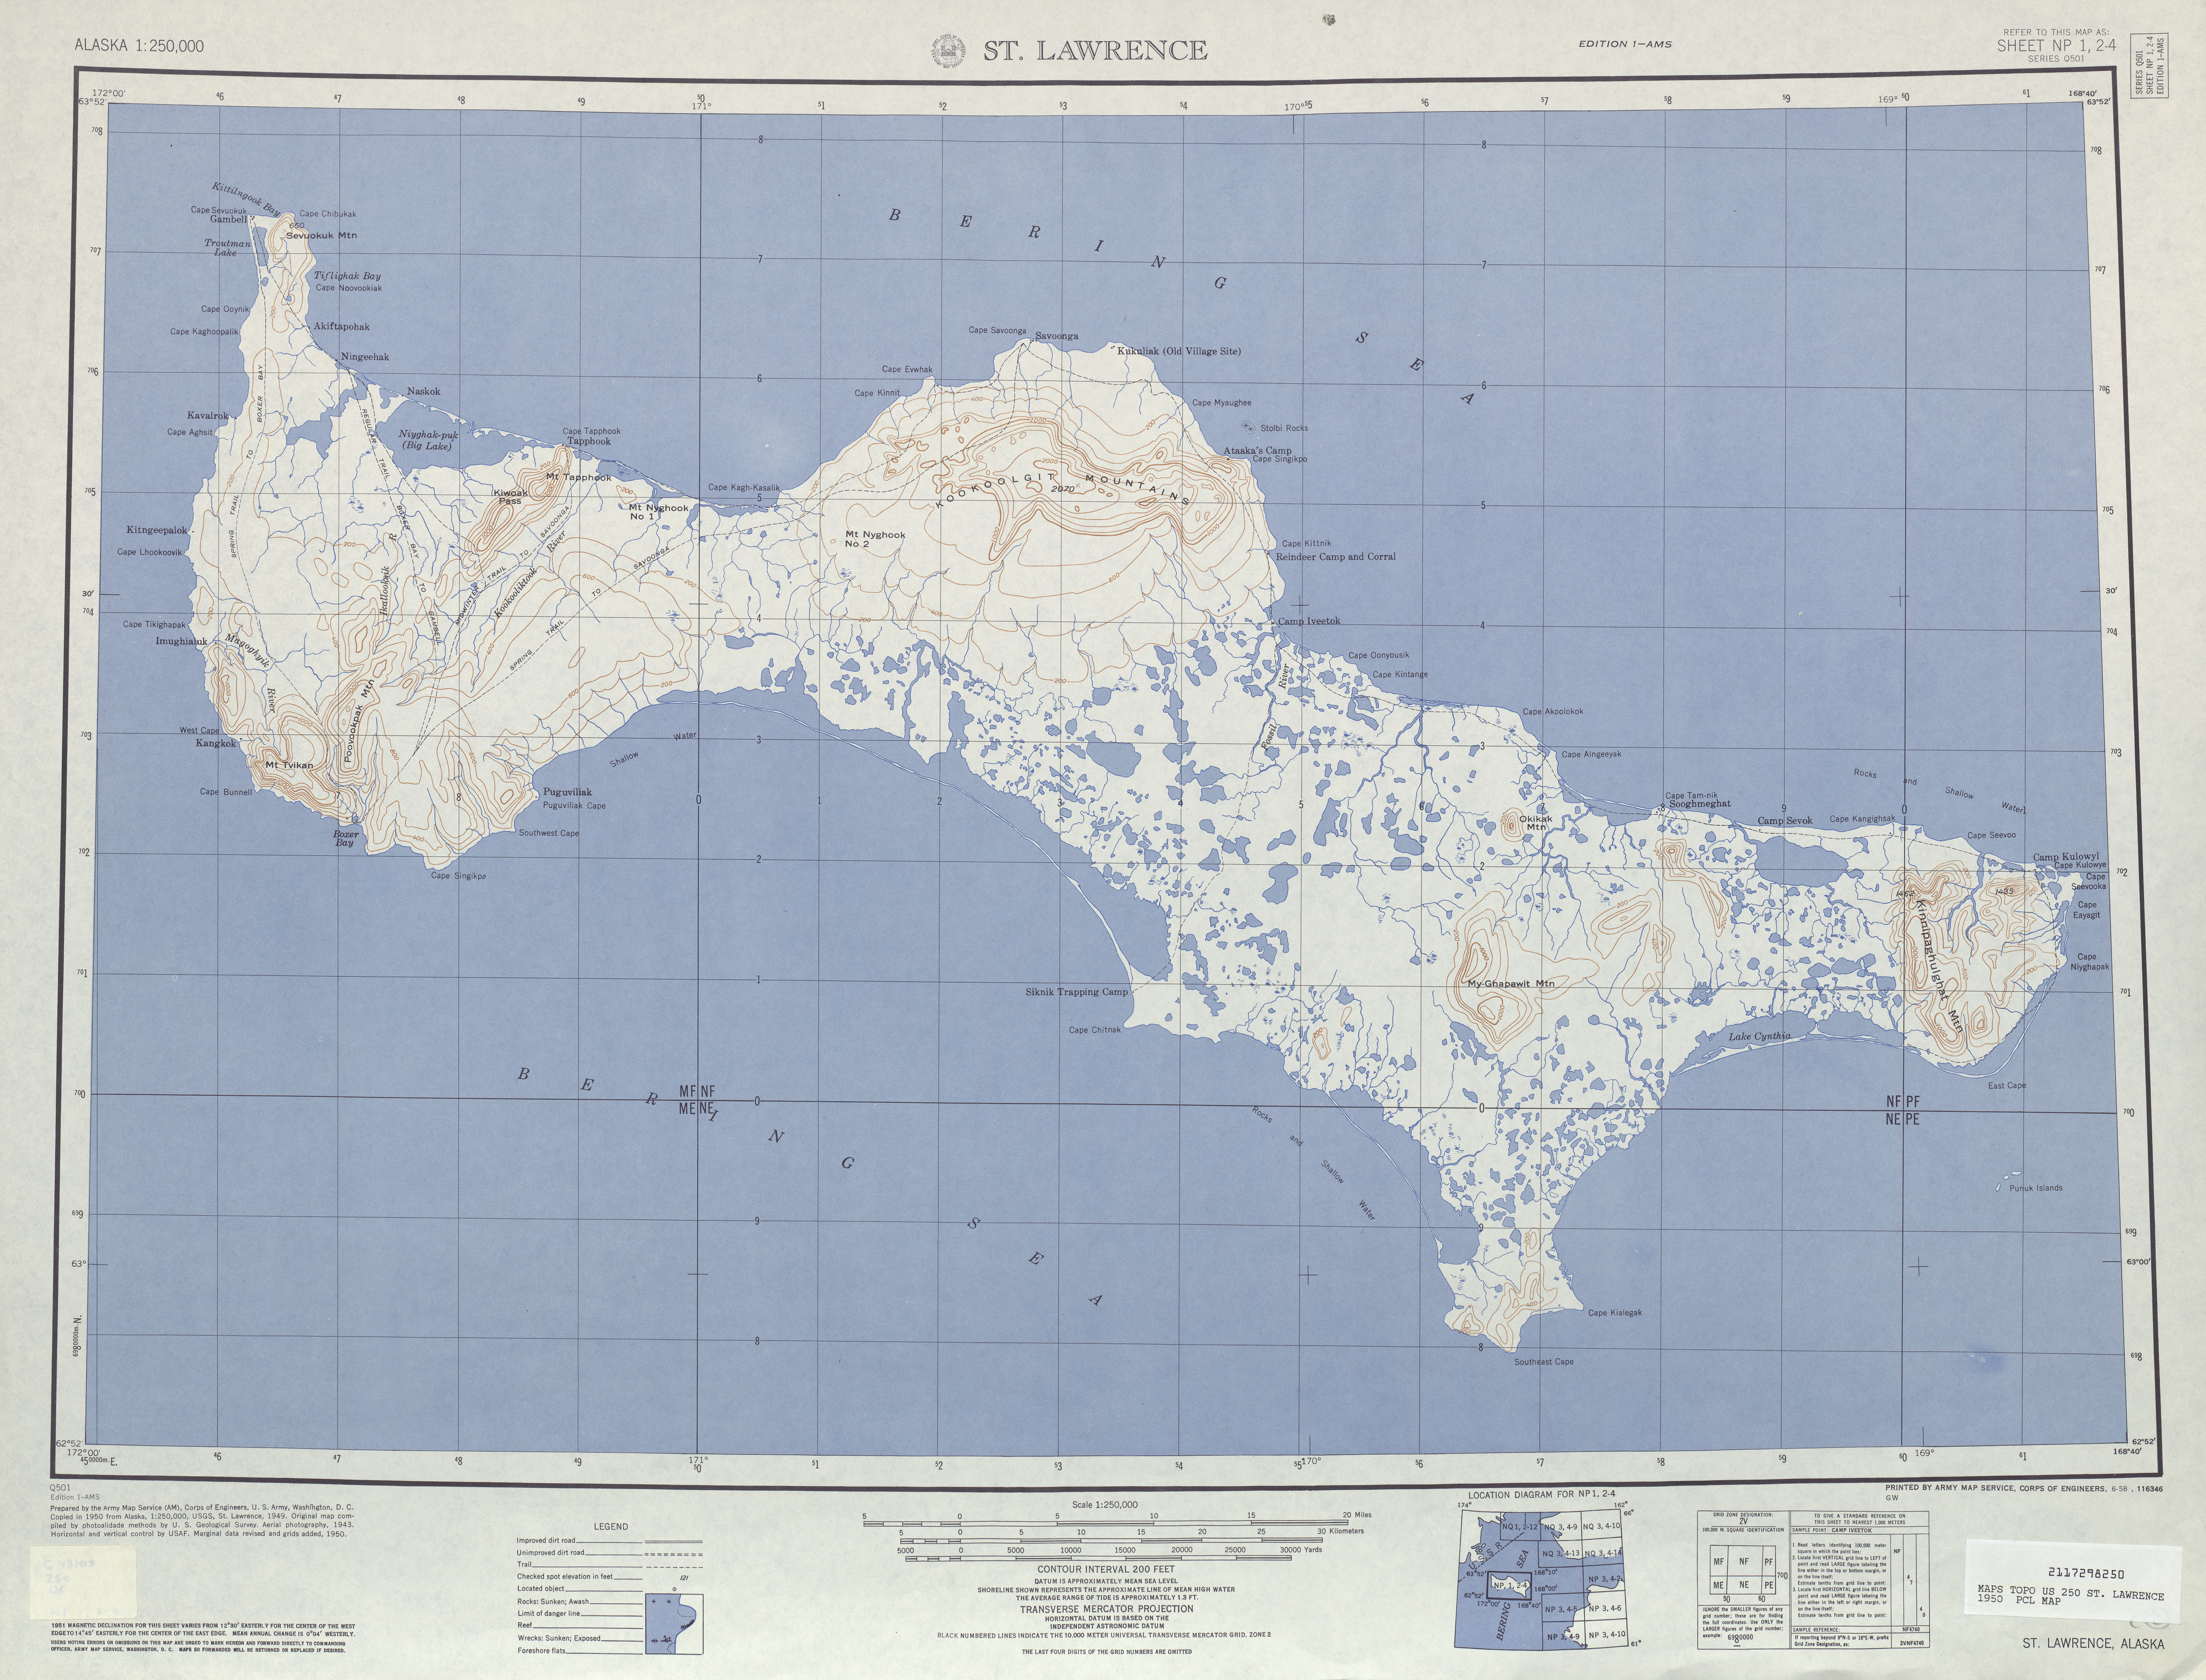 Saint Lawrence Topographic Map Sheet, United States 1950